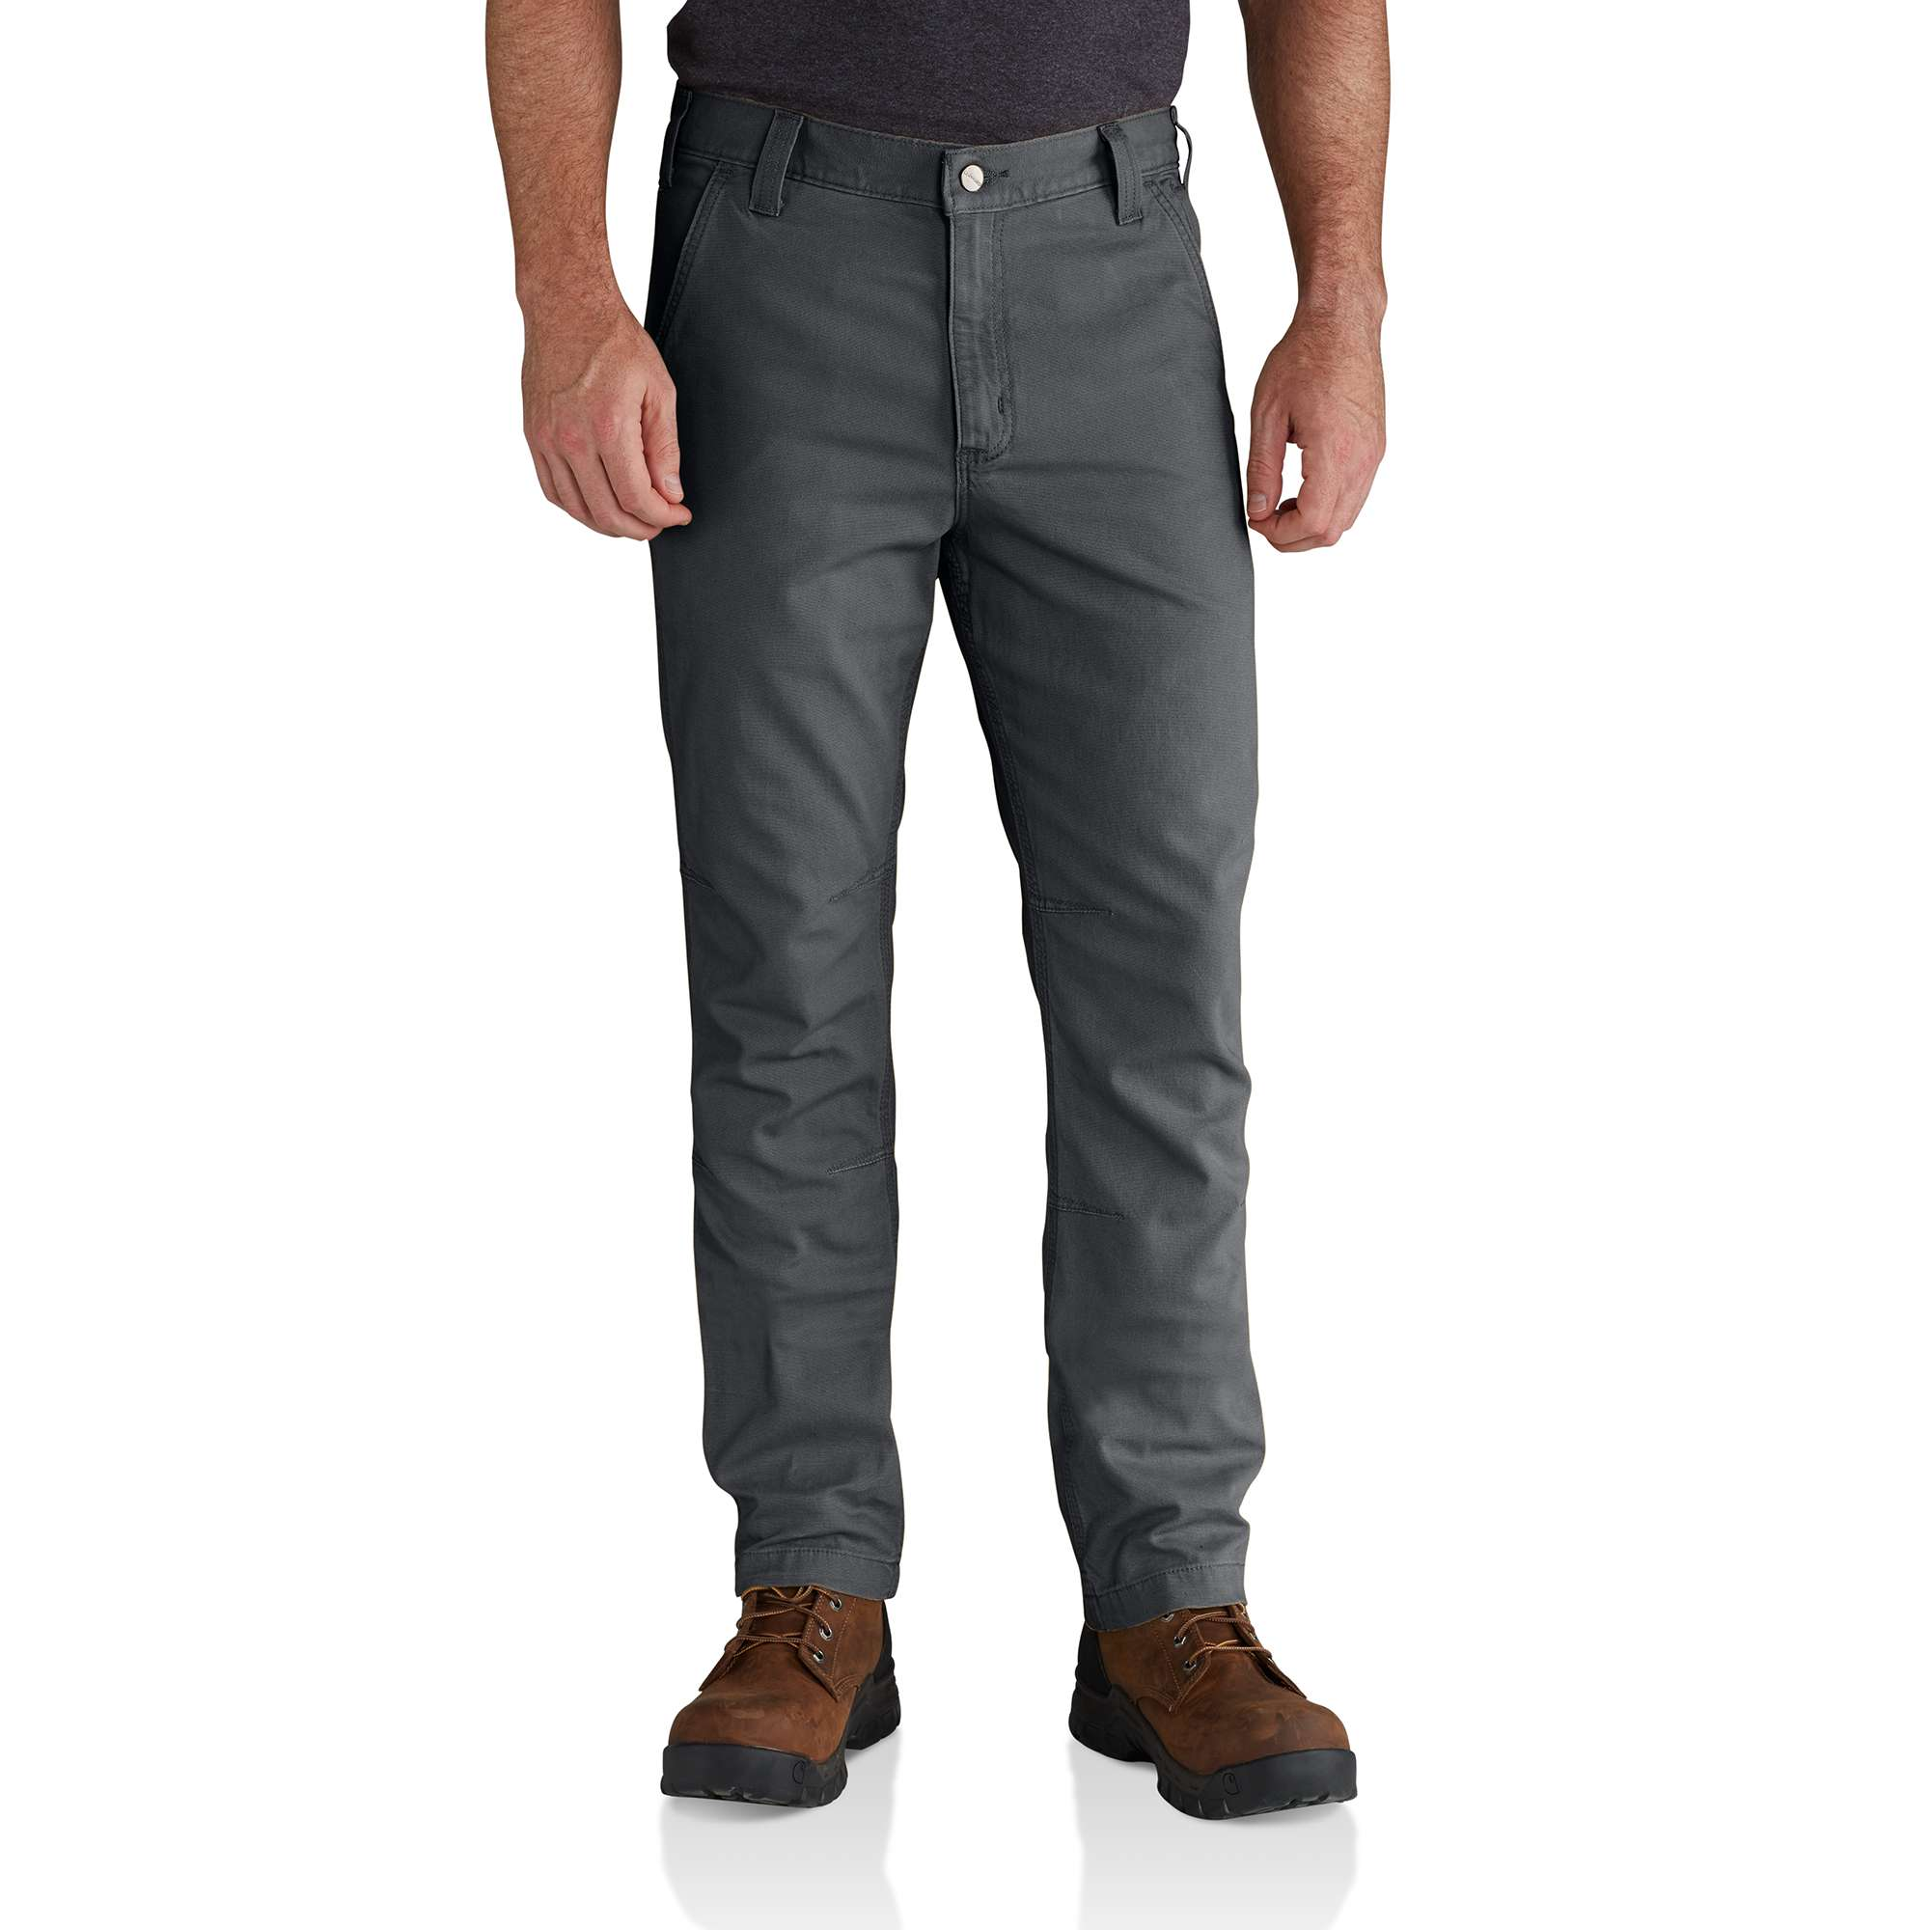 51bc880e Buy Mens Rugged Flex Rigby Straight Fit Pant - Carhartt Online at ...